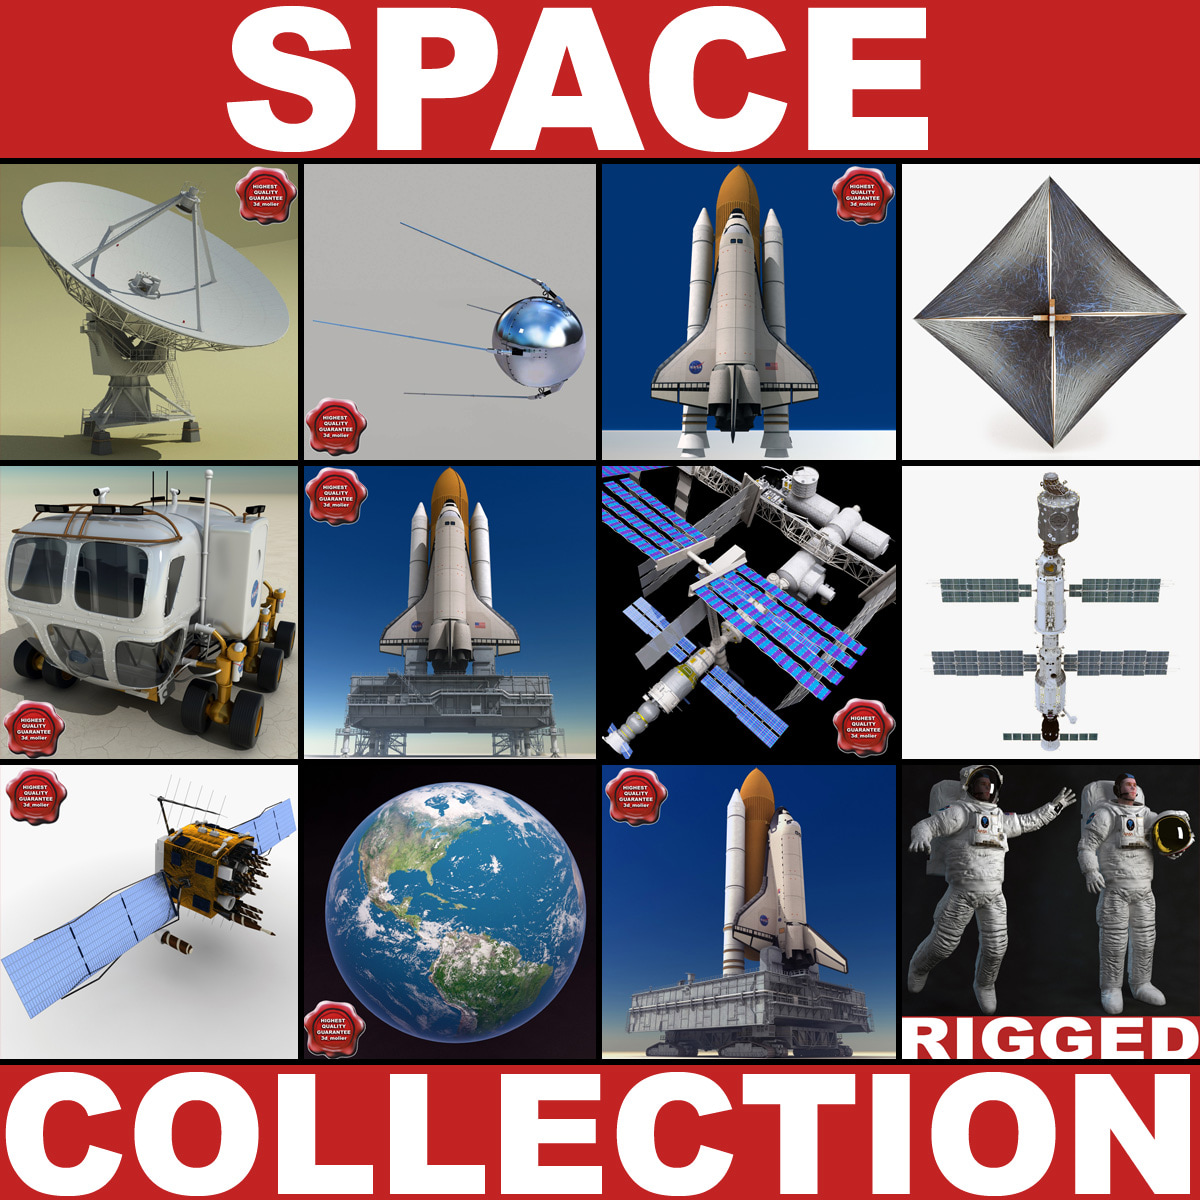 Space_Collection_V3_000.jpg